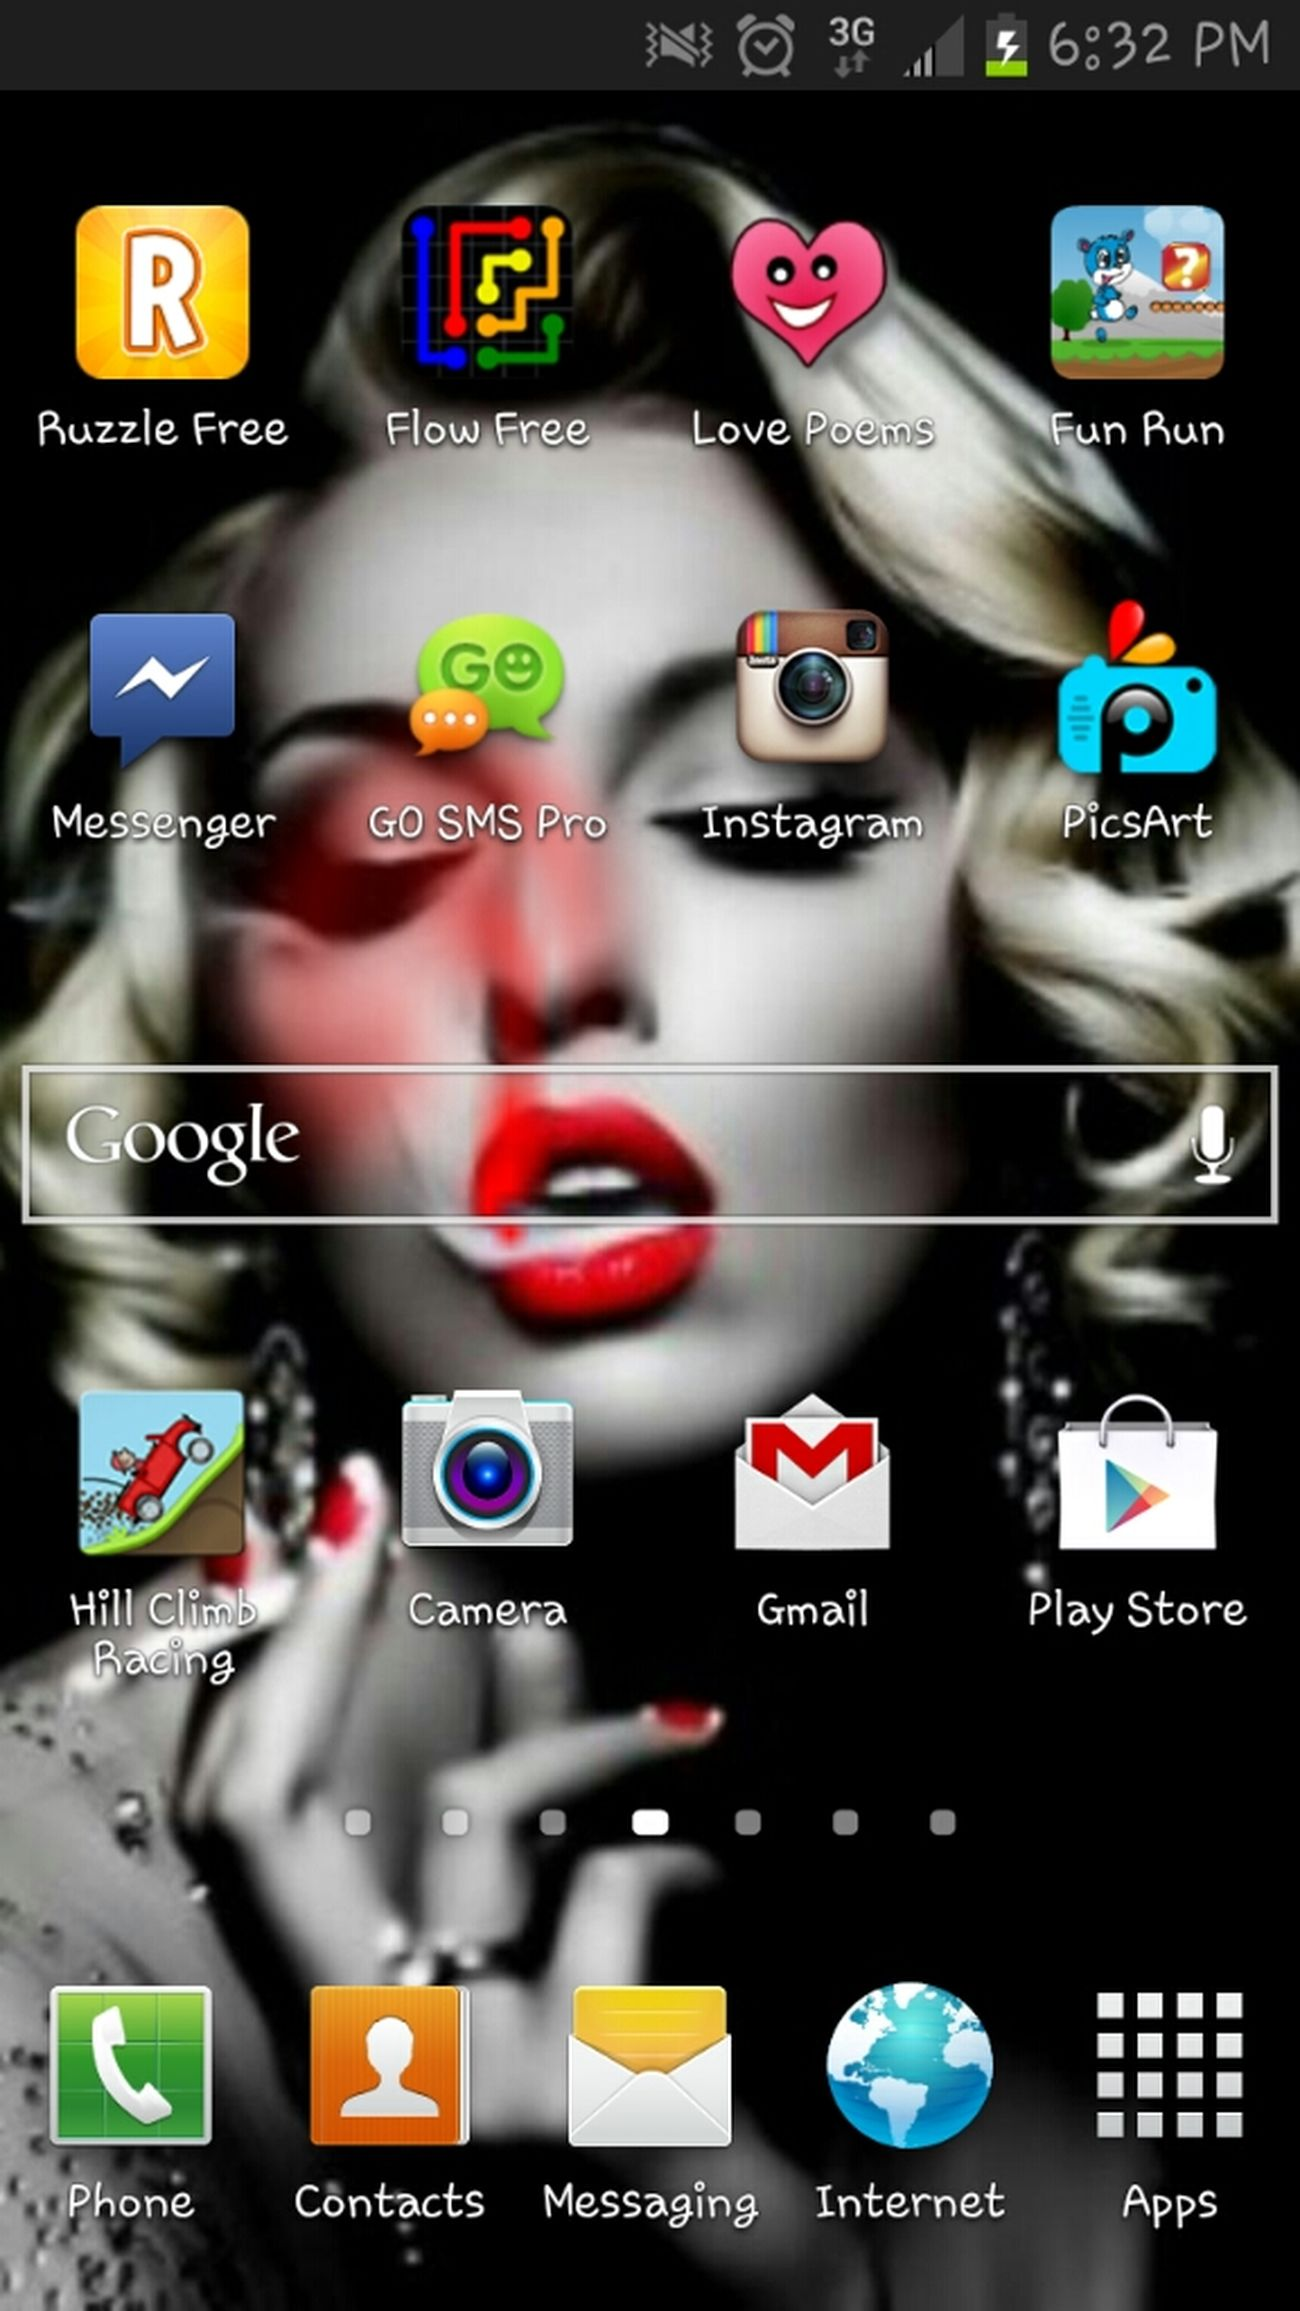 my wallpaper !♥♥ (;